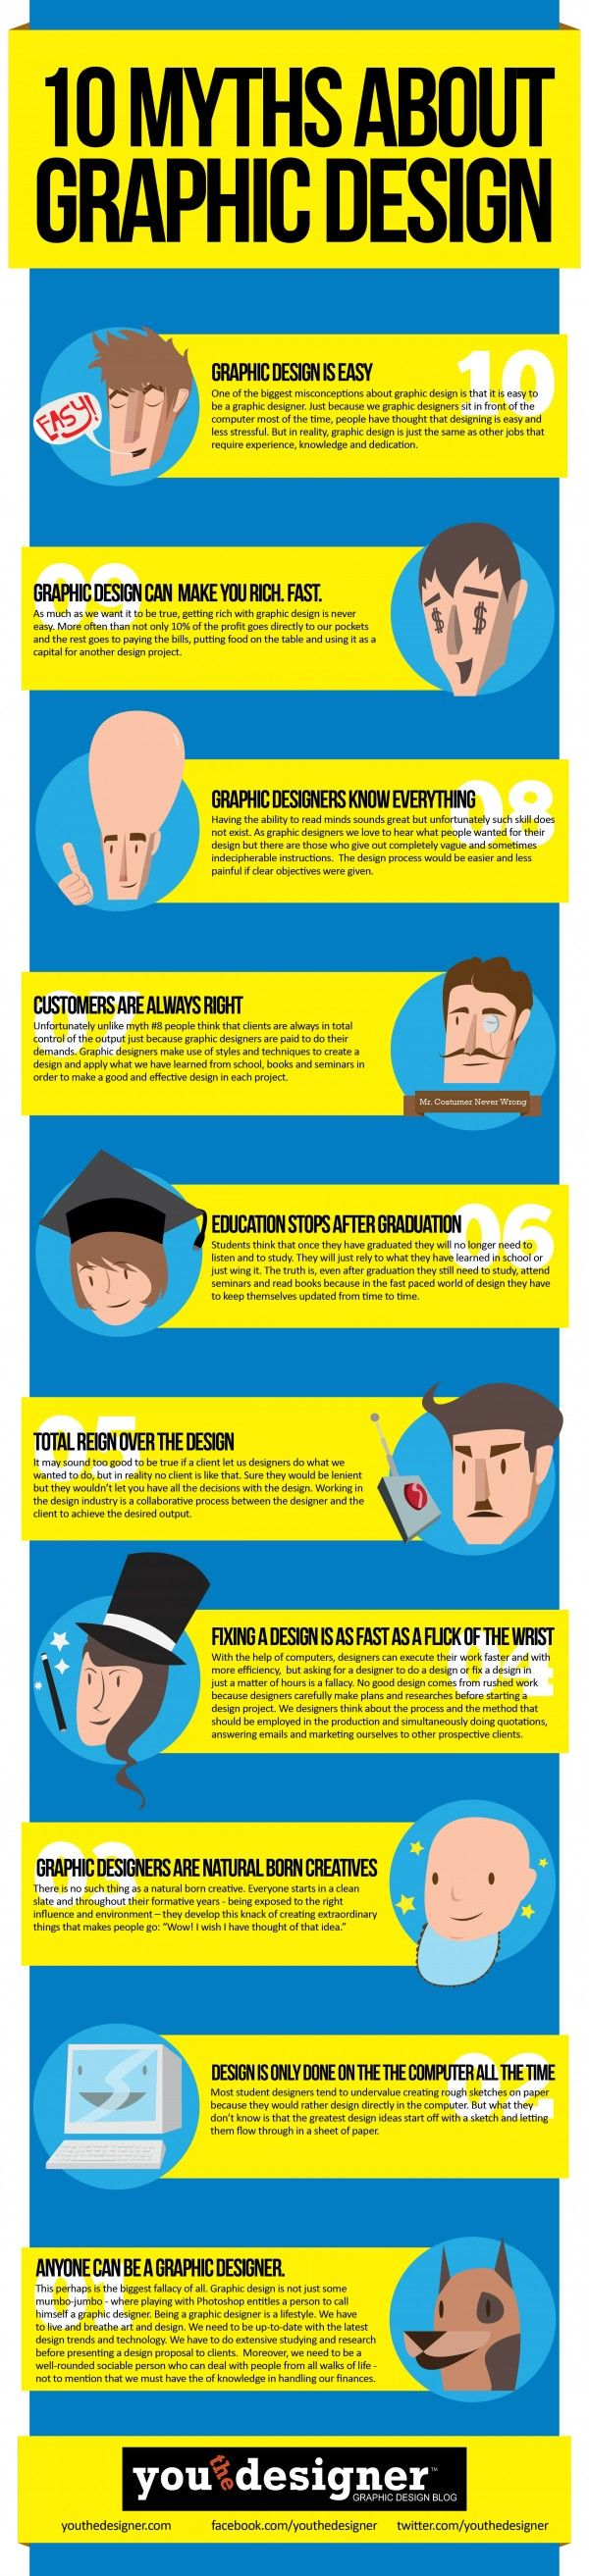 Infographic: 10 Myths About Graphic Design, October 15, 2012 by Patrick Jude Ilagan, http://www.youthedesigner.com/2012/10/15/graphic-design-myths/